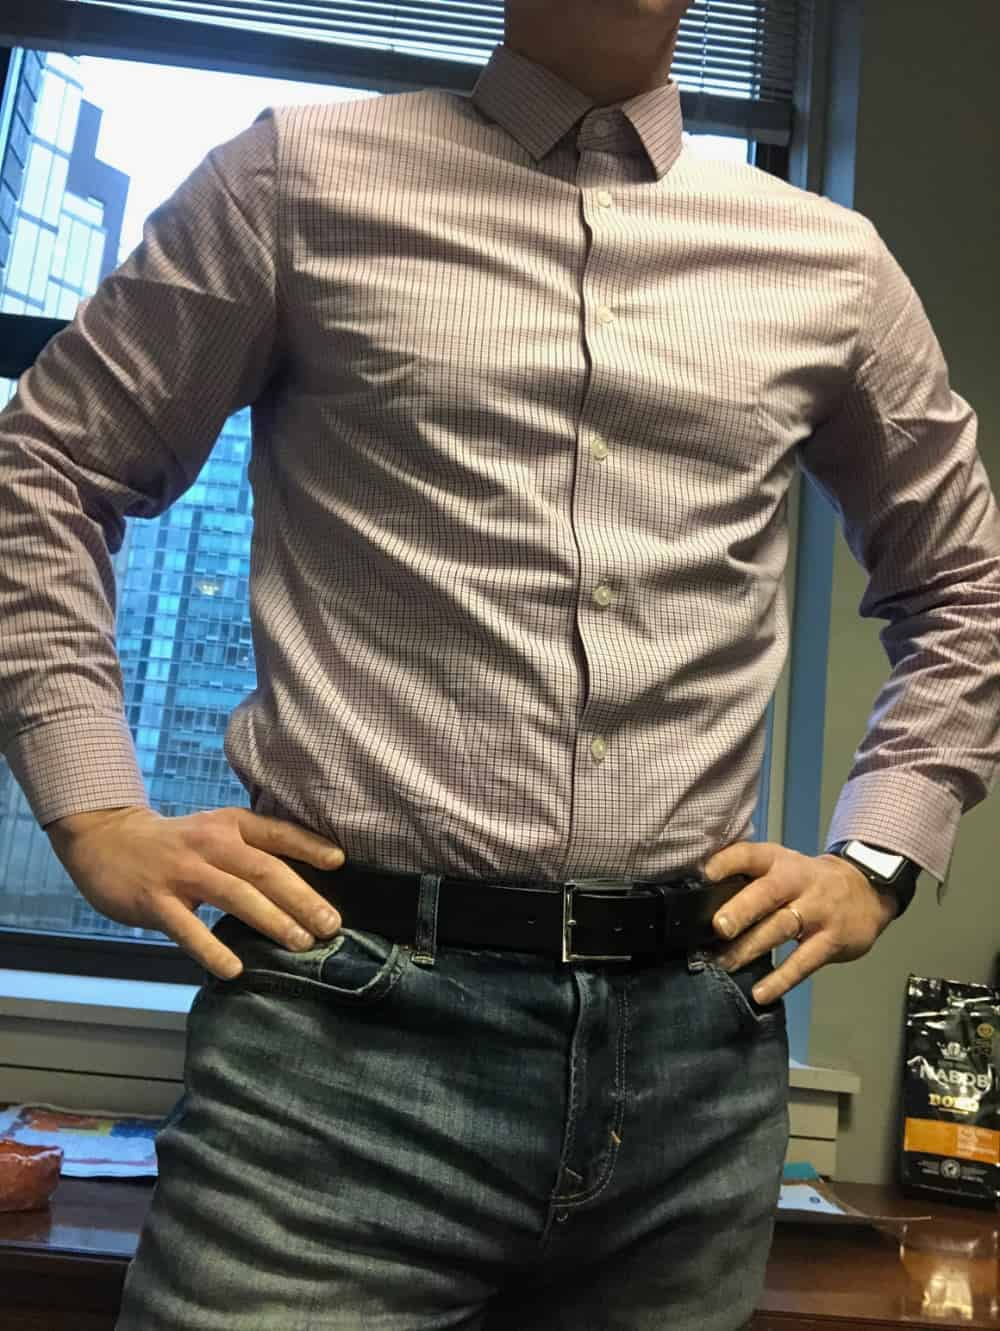 BR men's slim fit dress shirt tucked into jeans.